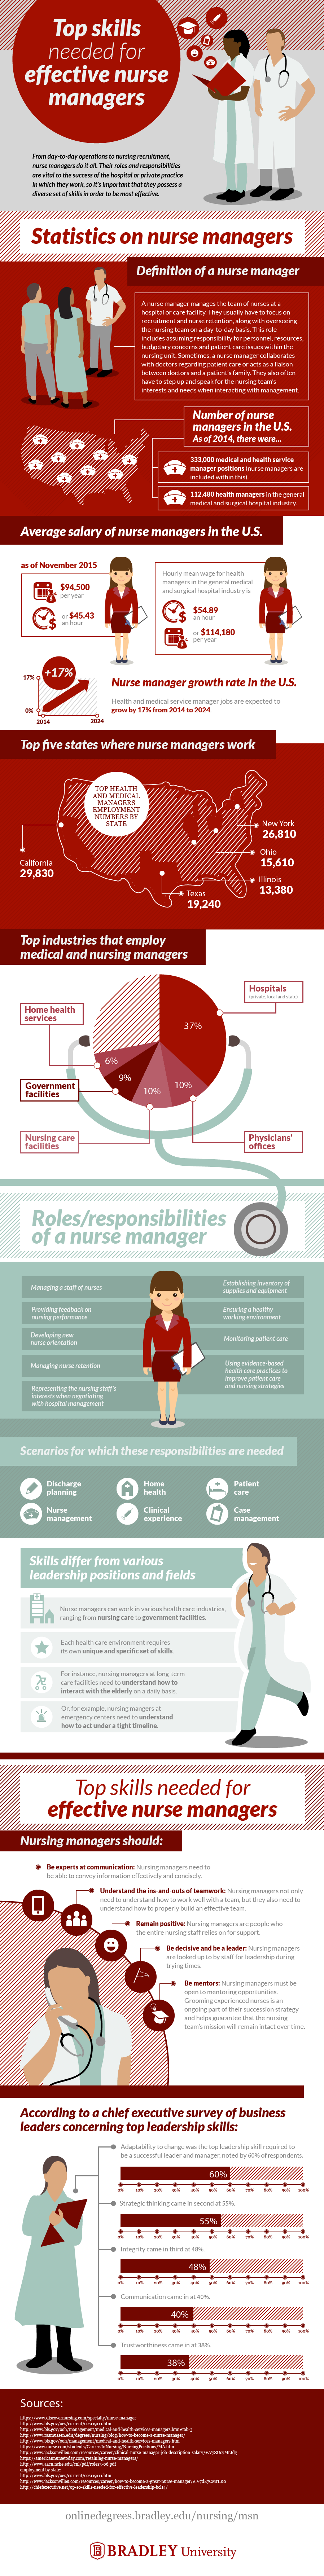 Top skills needed for effective nurse managers